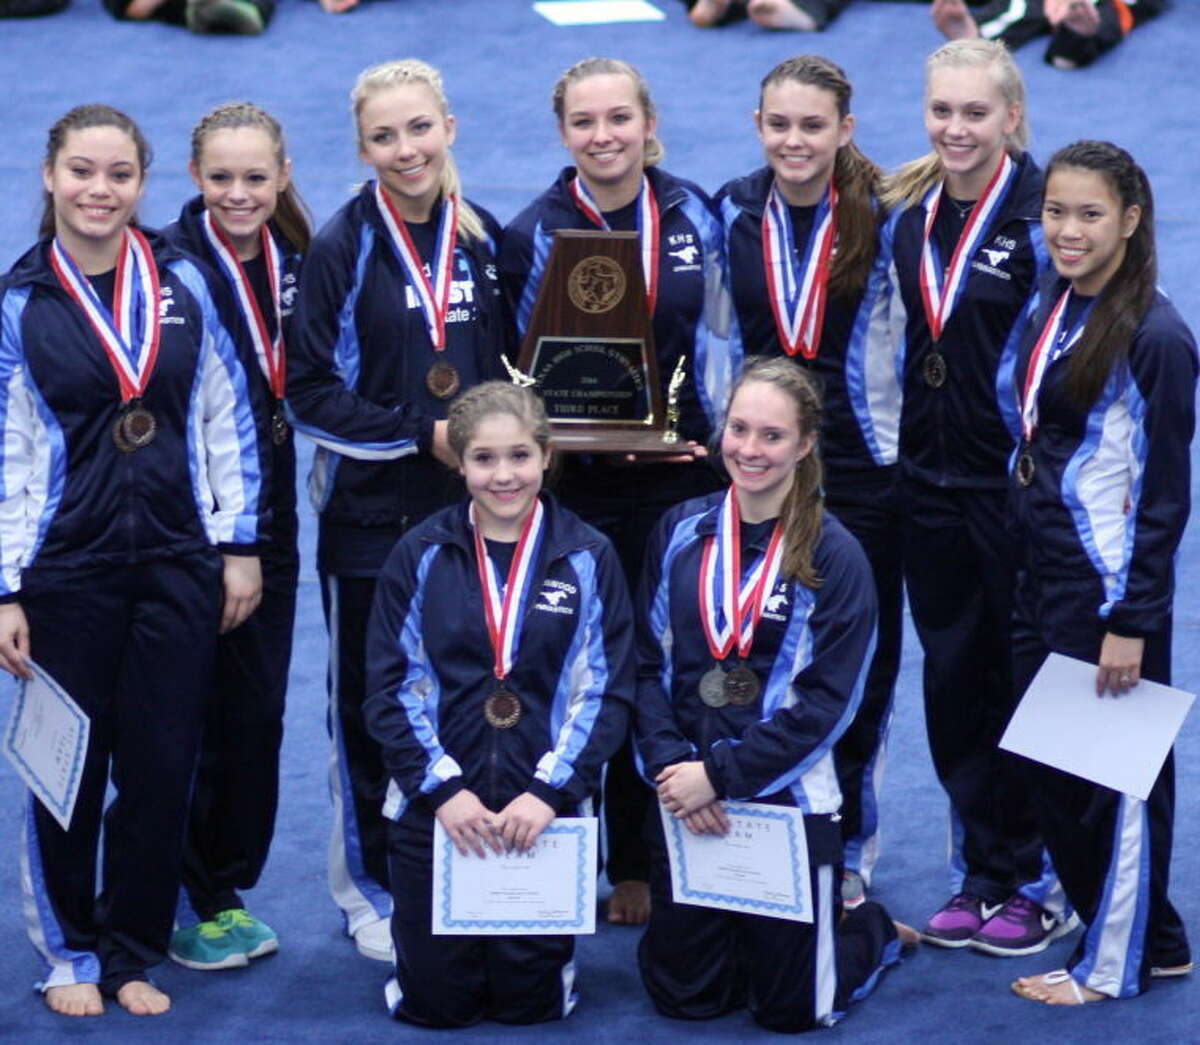 The Kingwood girls gymnastics team finished third at the state championships last week. Pictured left to right. Front row: Jessie Madere and Madison Maxey. Second row: Sydney McAndrews, Meghan Loeffler, Katya Ballands, Morgan Settegast, Lauren Torres, Karsen Kruger and Jayda McChane. Not pictured: Samantha Refvik.